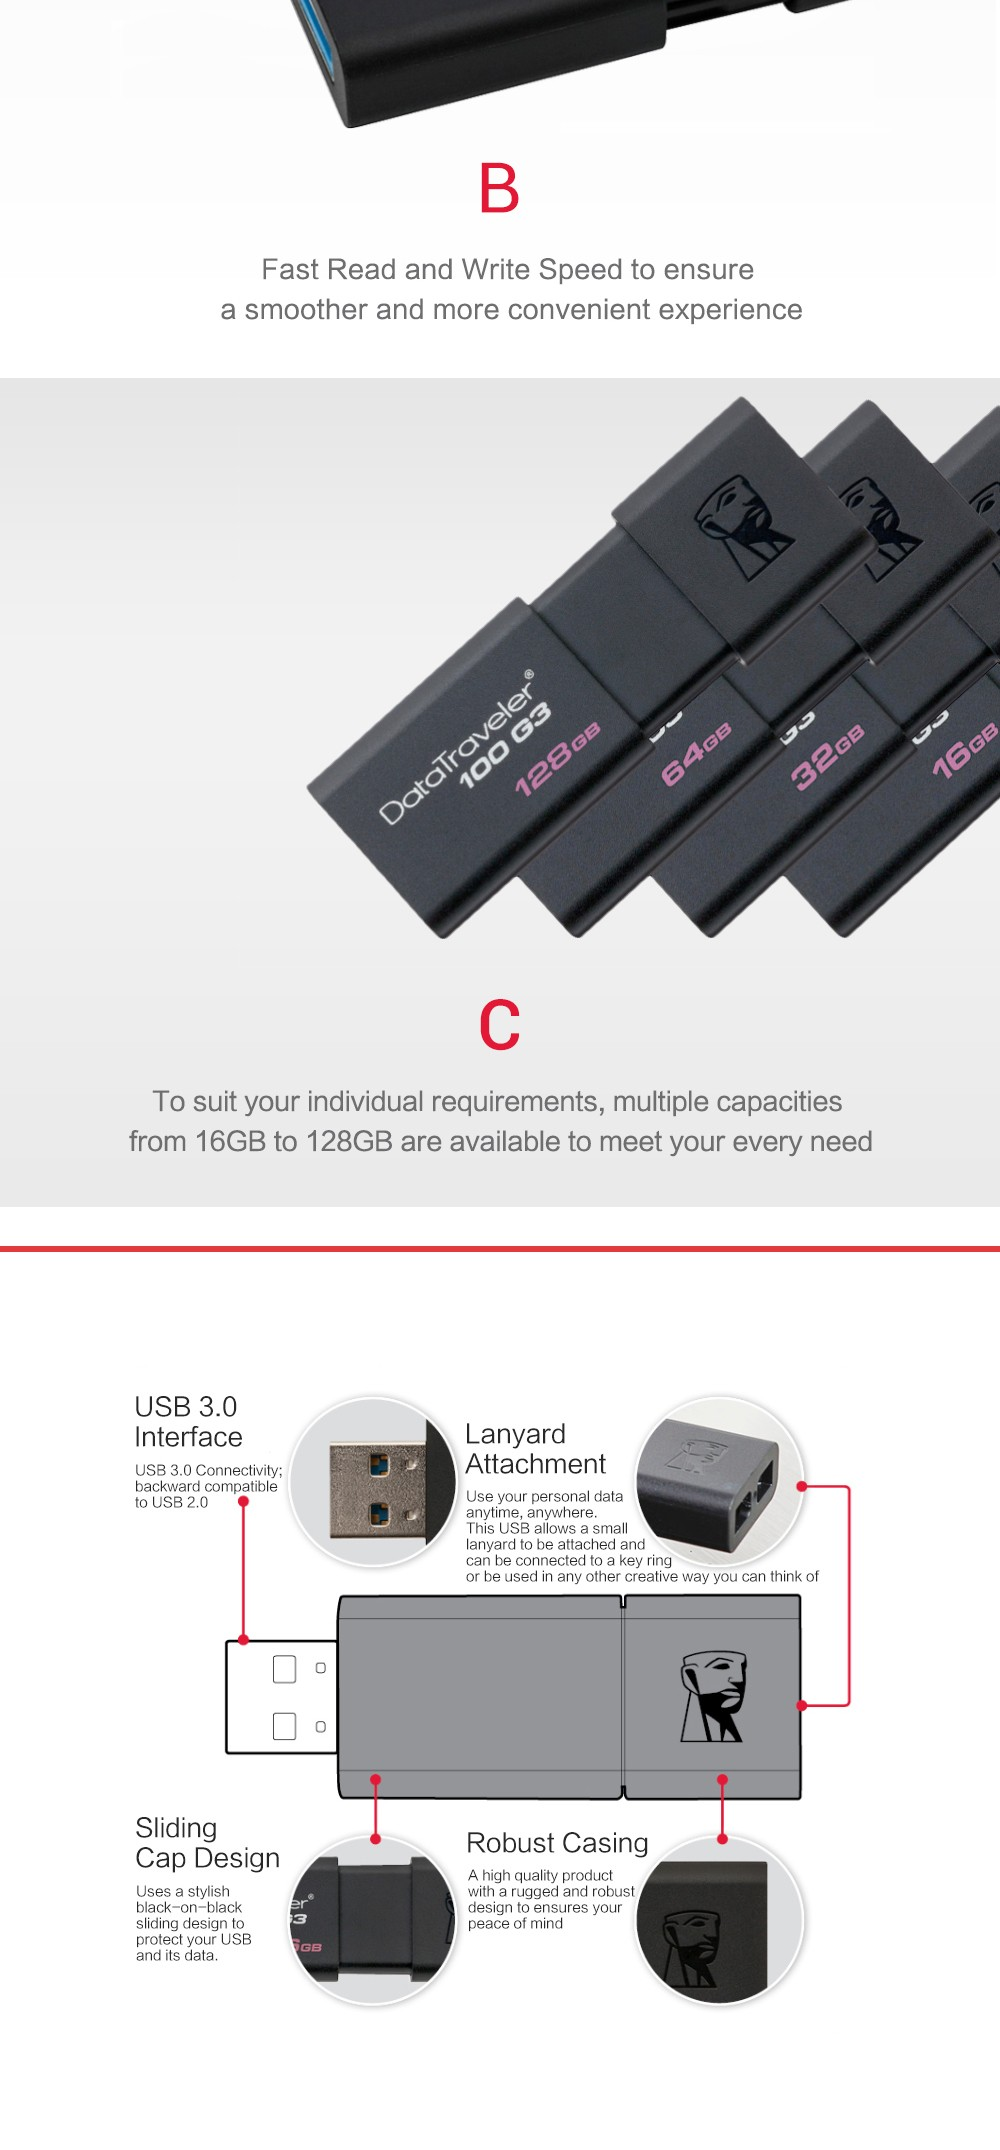 Kingston 128gb USB 3.0 Pen Drive high speed USB Flash Drives  128GB PenDrives USB Stick DT100G3 memoria usb 7